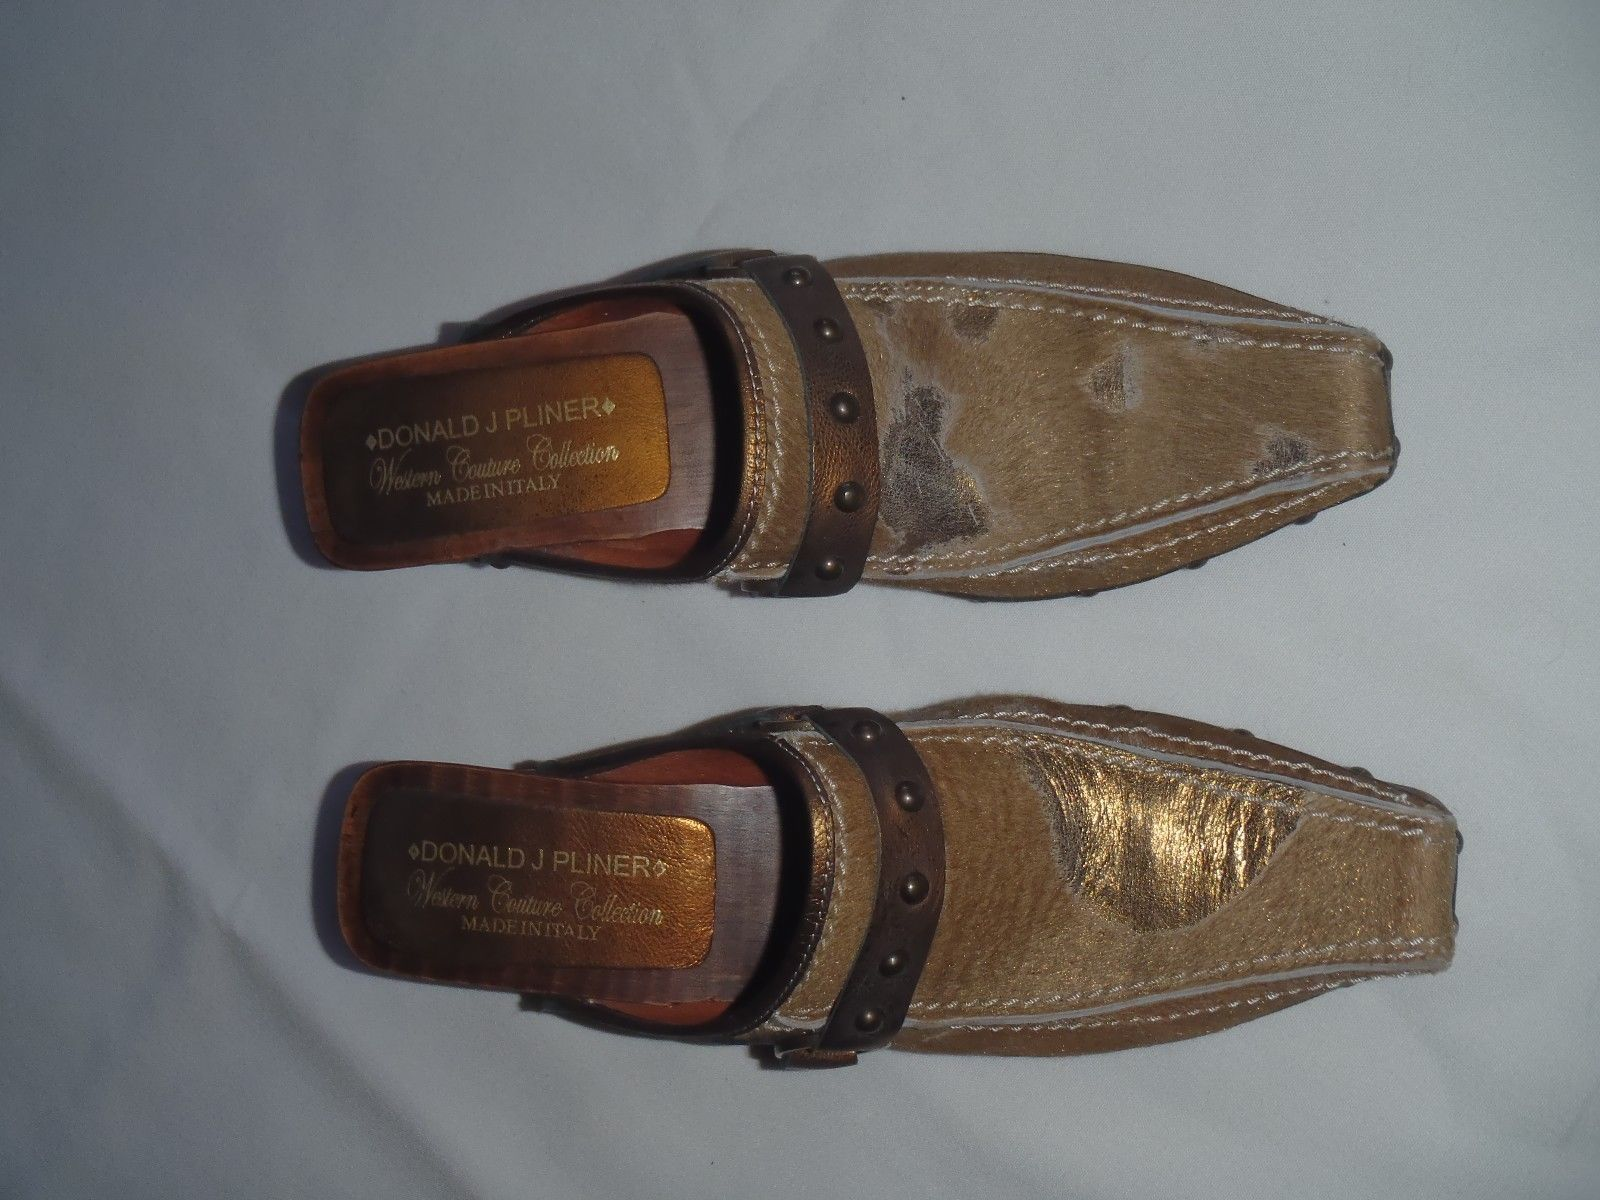 09b2a982fca Donald J Pliner Western Couture Pony Hair and 50 similar items